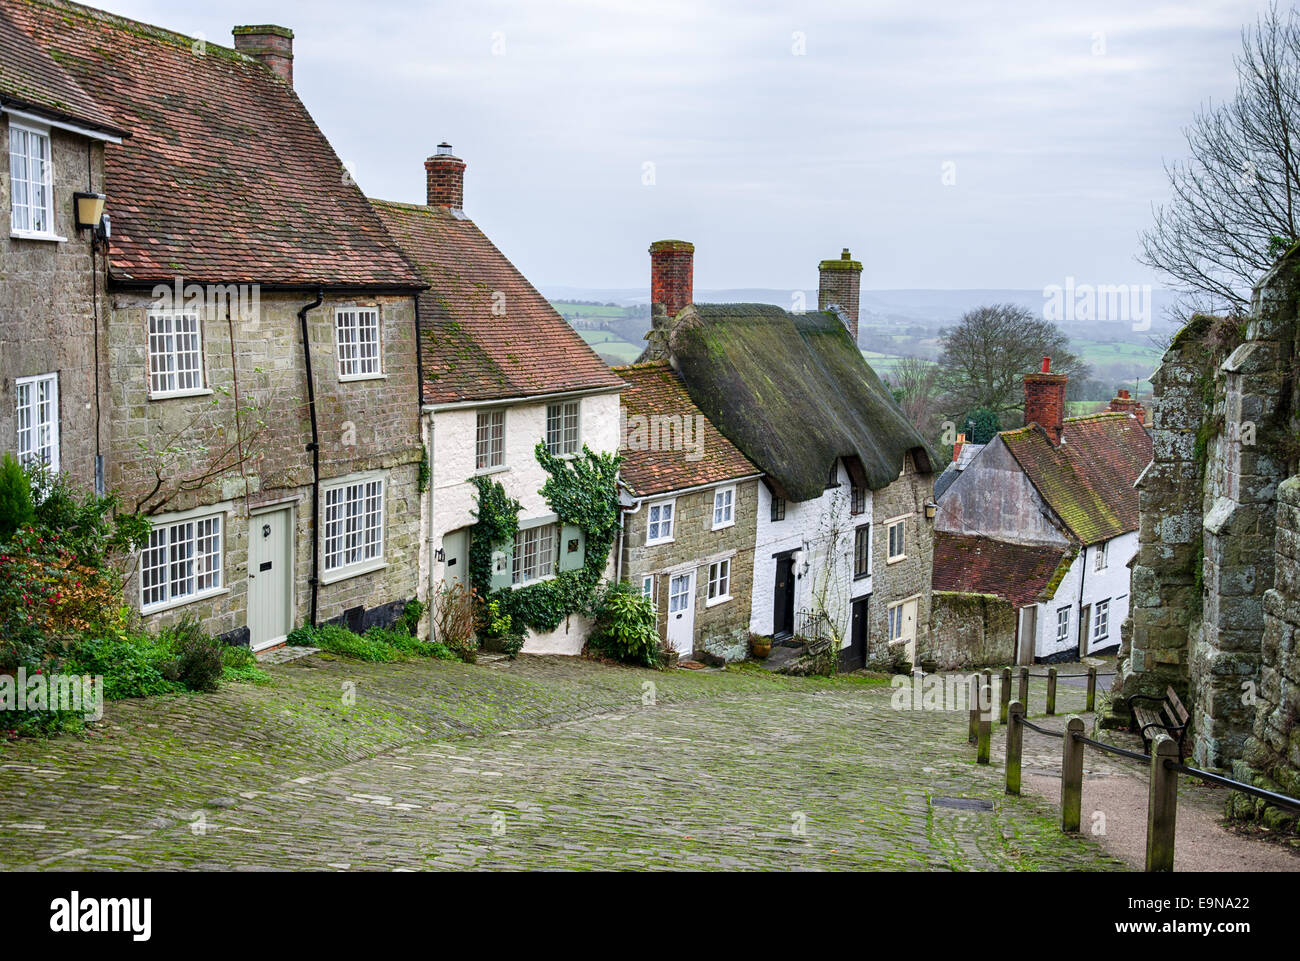 Cottages on a cobblestone street at Gold Hill in Shaftesbury in Dorset - Stock Image